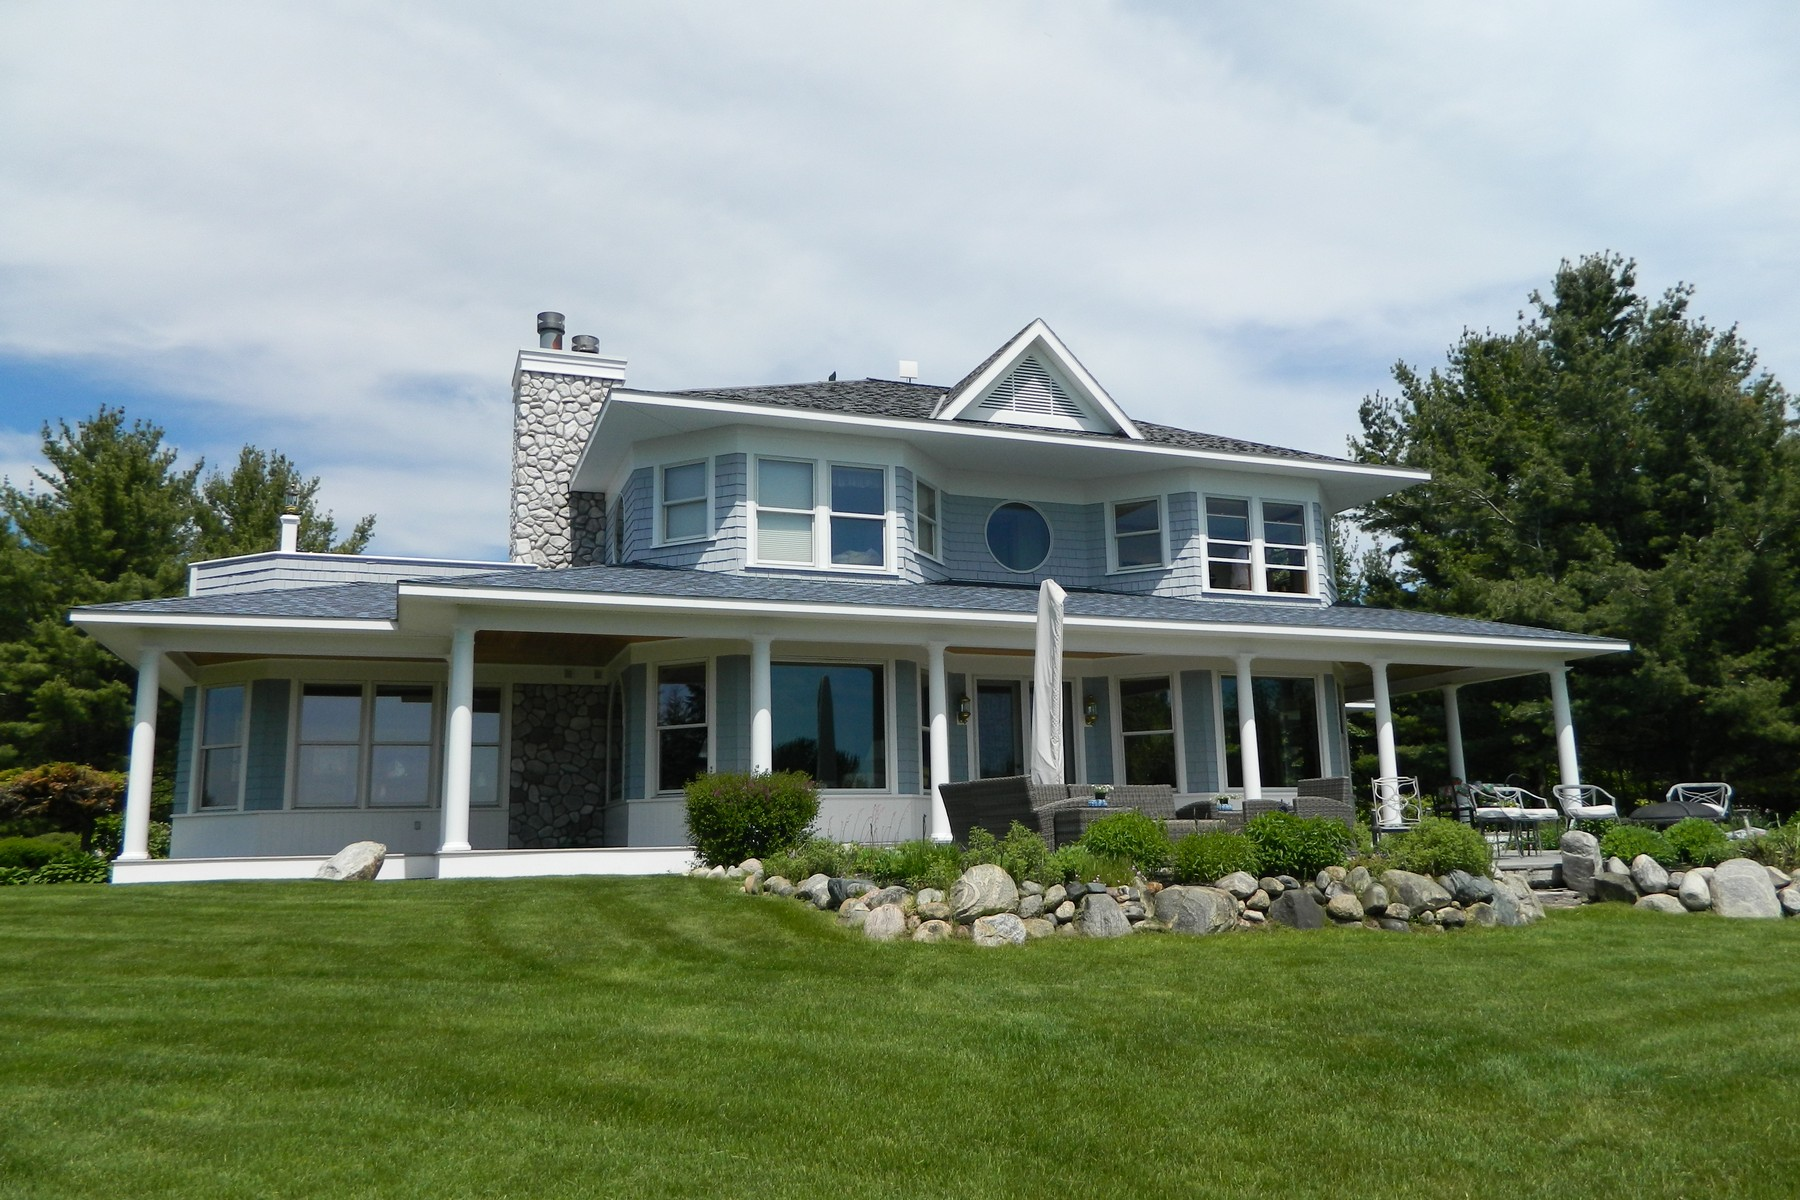 Property For Sale at 6281 S. Lake Shore Drive, Harbor Springs